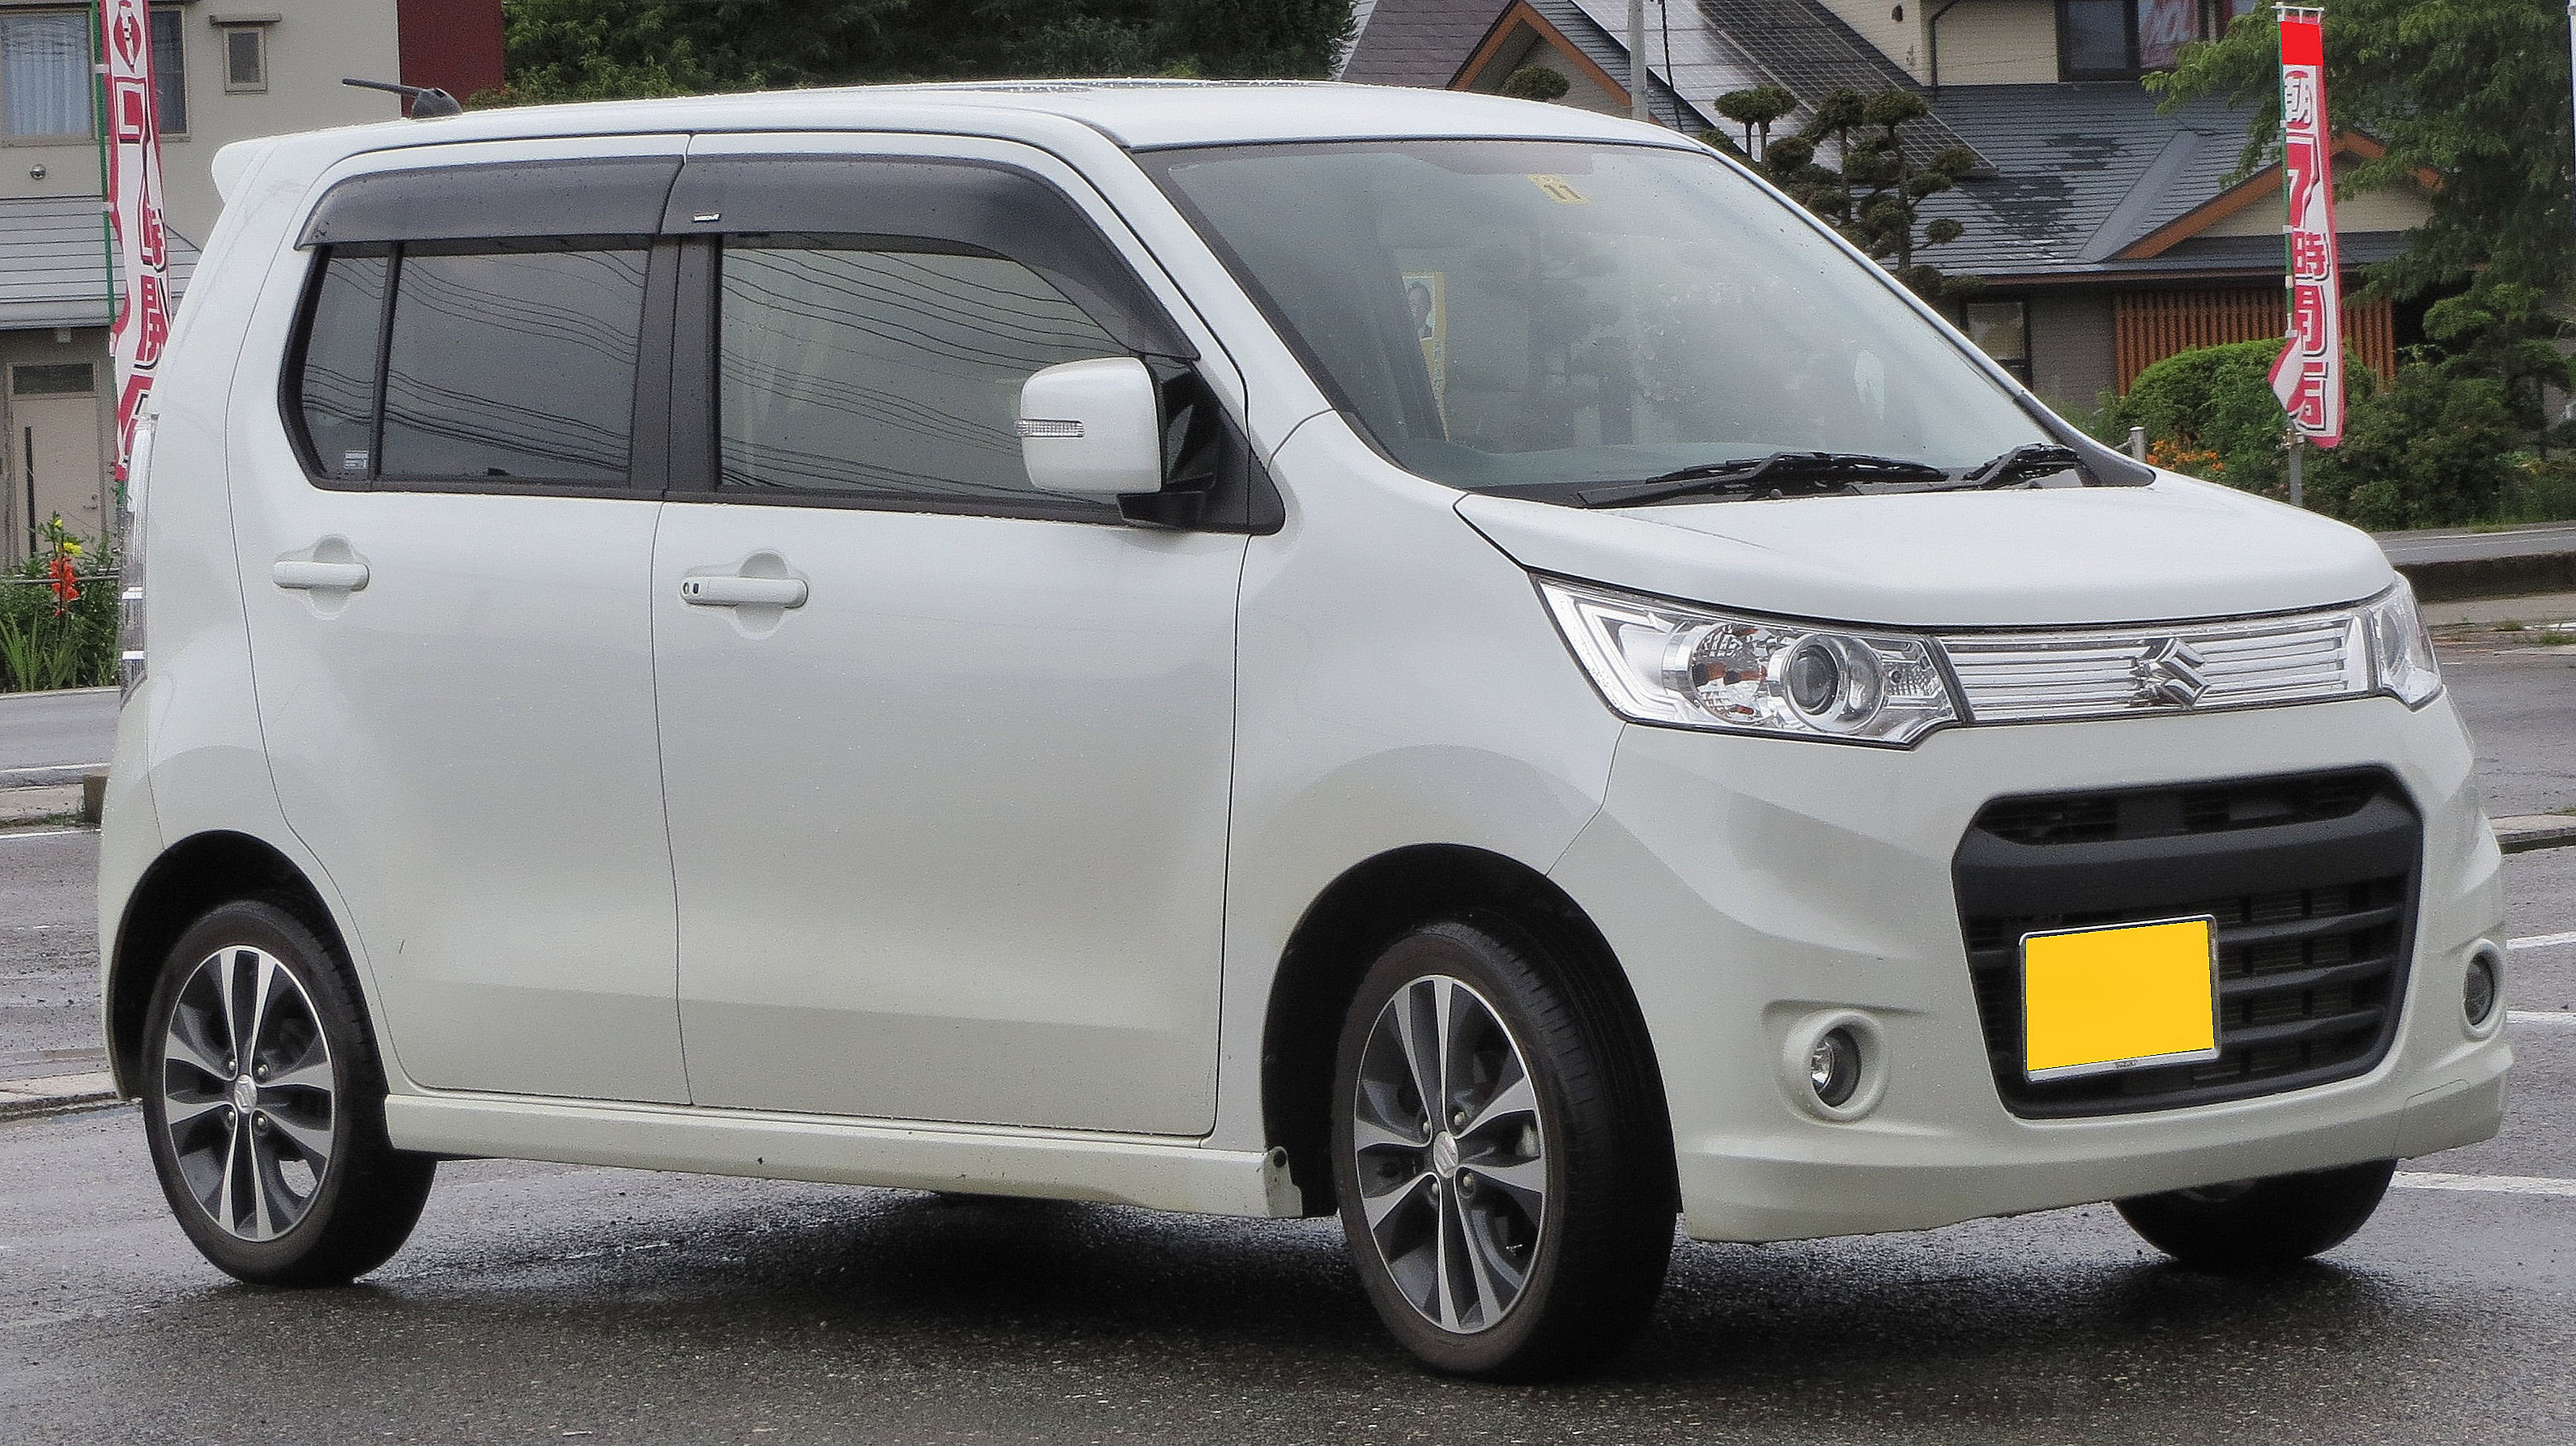 Suzuki Wagon R 2017 Exterior Side View